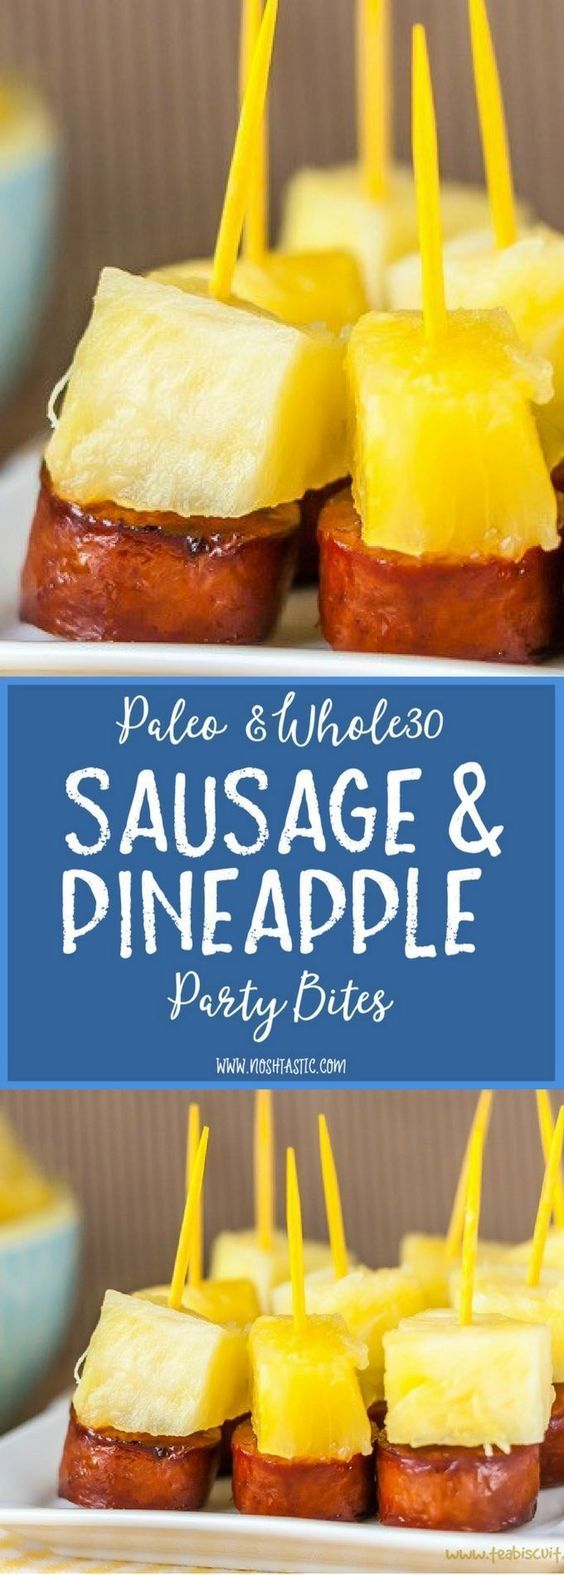 Sausage and Pineapple Party Bites